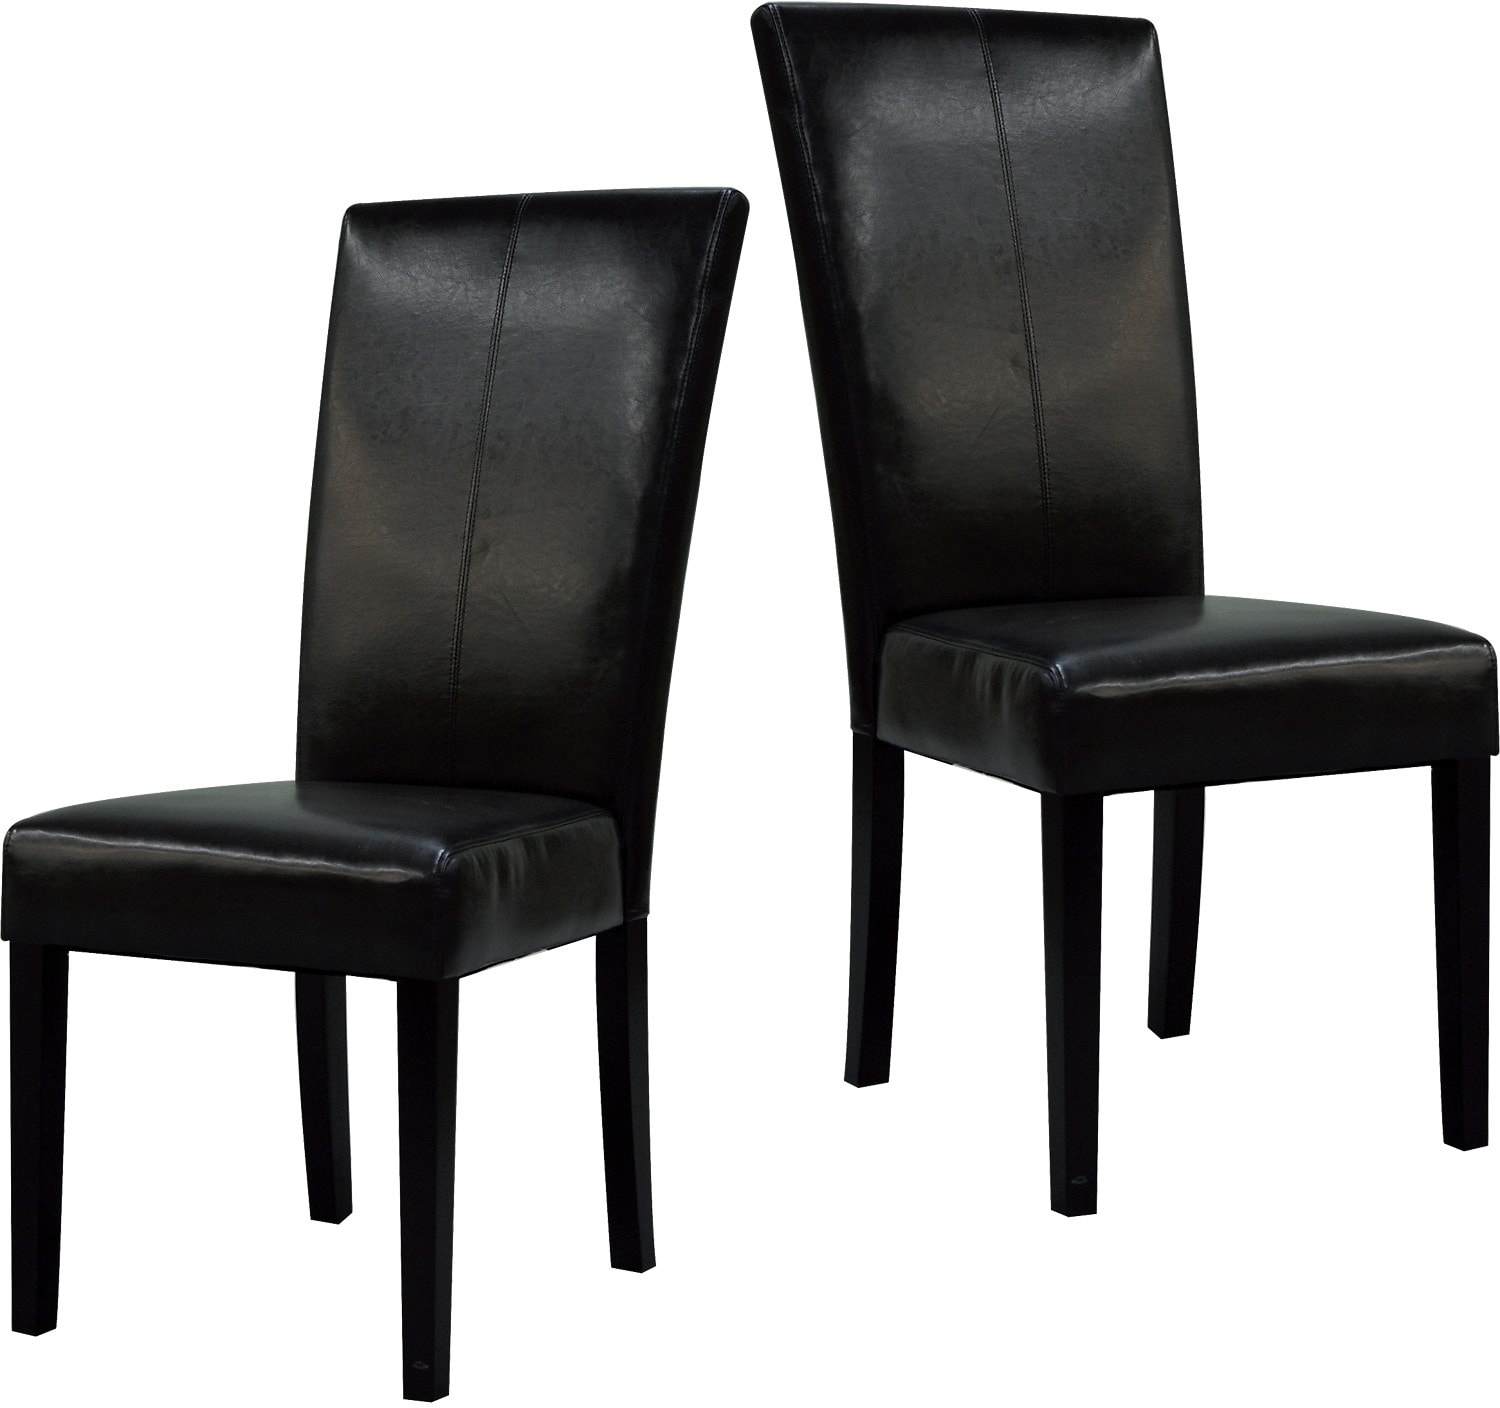 Black Dining Chair Package